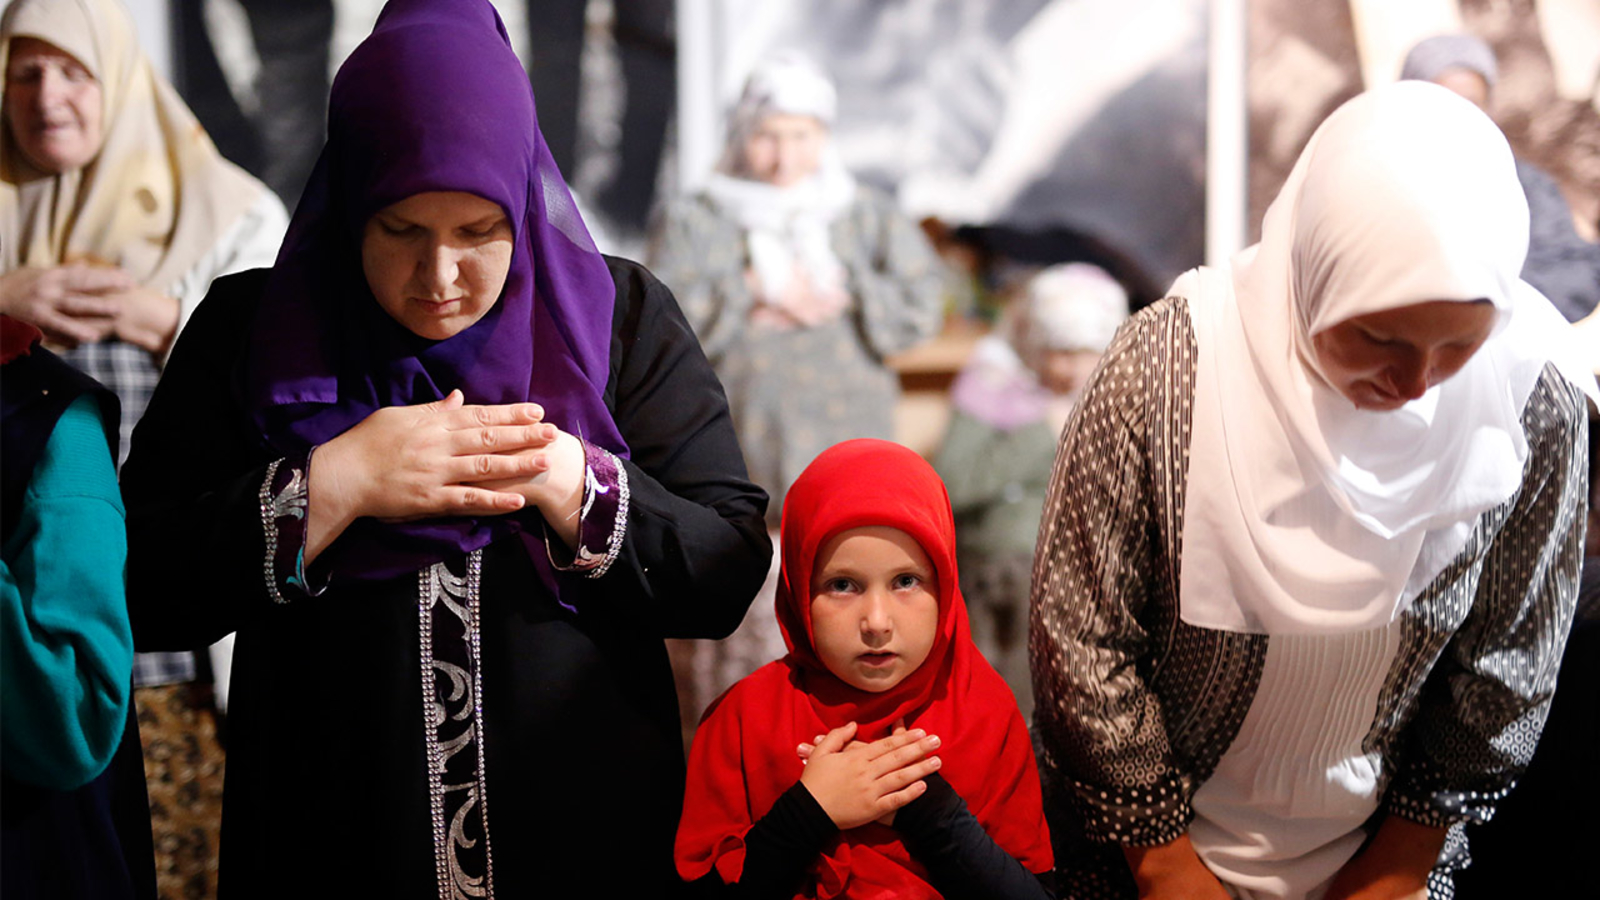 Ramadan 2019: What you need to know about the Islamic holy